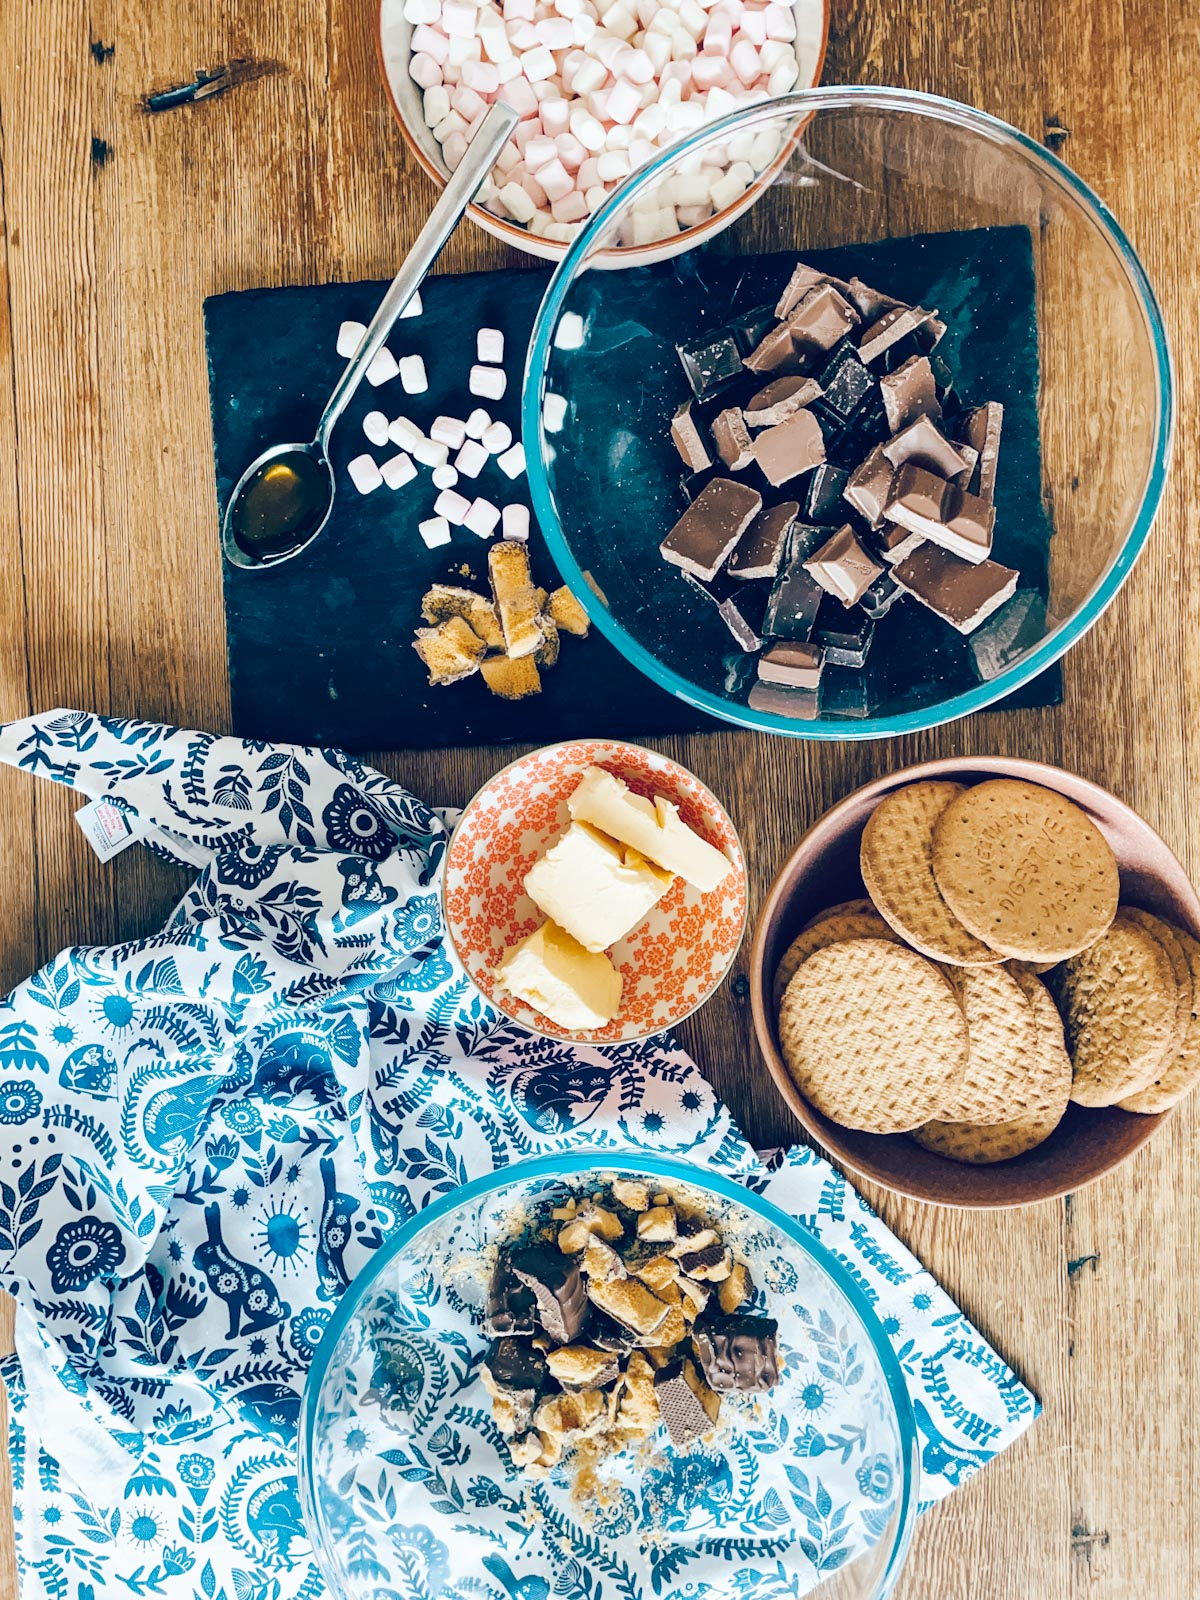 Ingredients to make Crunchy Rocky Road